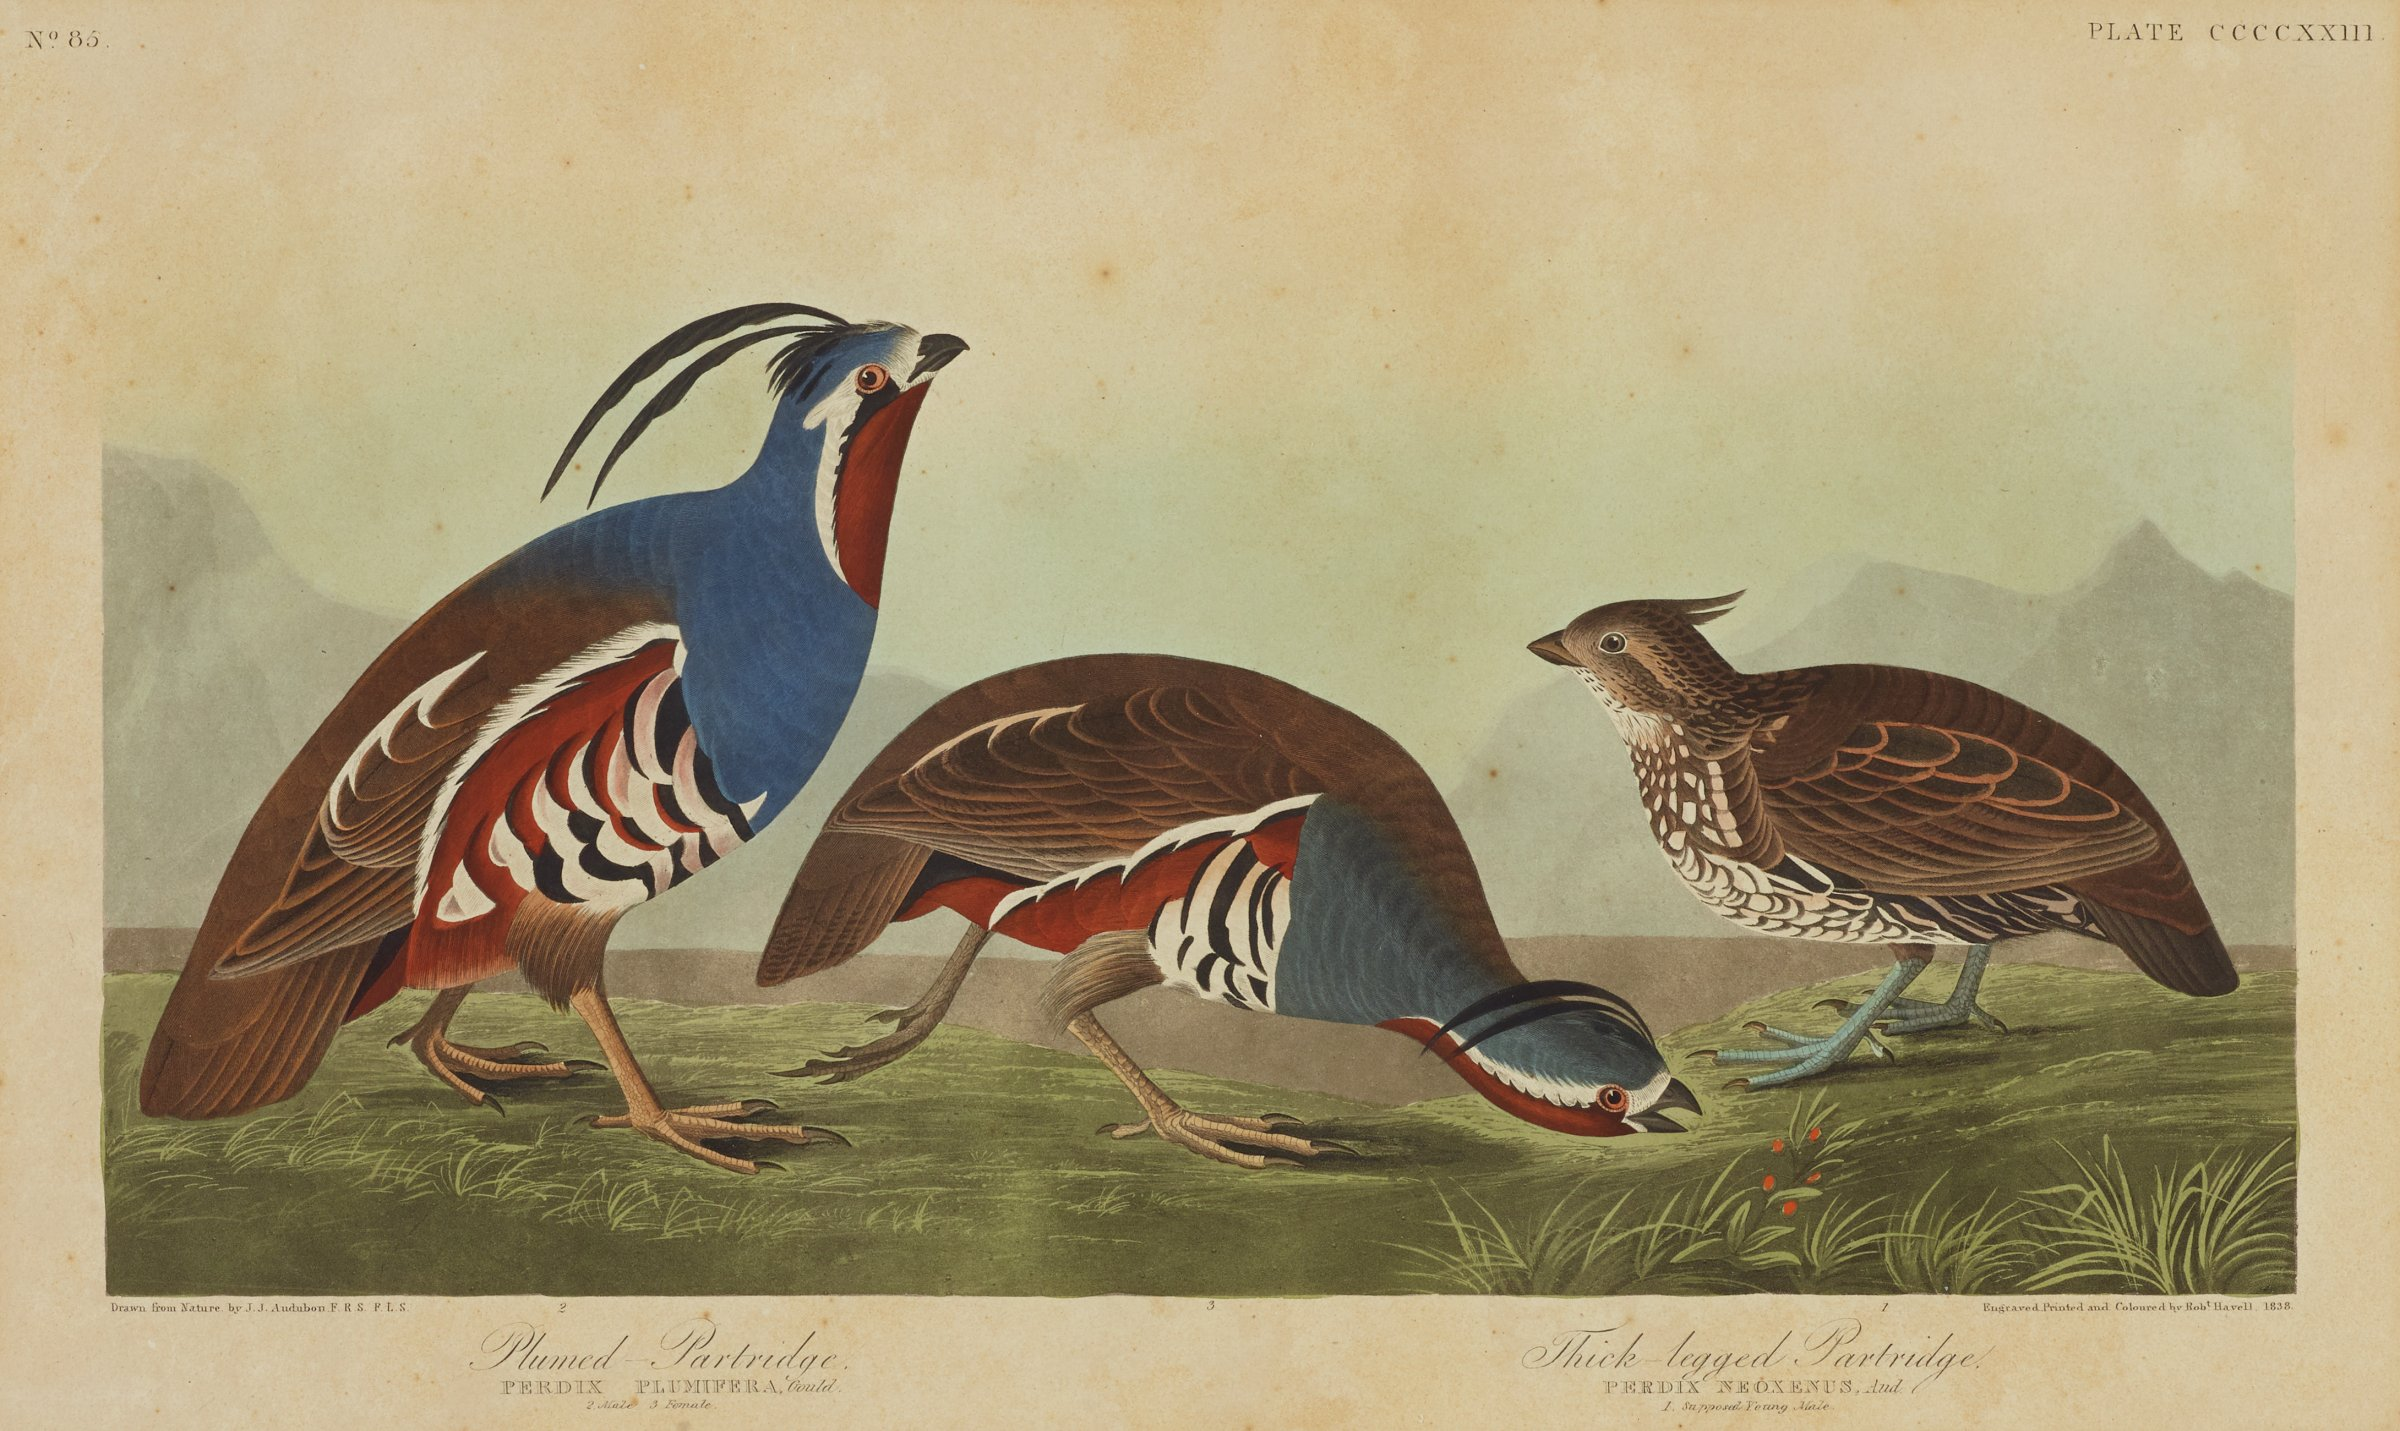 Three partridges are depicted in profile. They stand on ground that is scattered with patches of grass. In the background are faint impressions of mountains. The two larger partridges on the left contain blue, dark red, brown, and white feathers on their body. Their stomachs mimic a striped pattern in black and white. Two long feathers grow from the partridges' heads and drape backwards nearly touching their backs. The third partridge on the right contains a brown feathered topside and an underside mixed with brown and white feathers. Two short black feathers grow outwards from the partridge's head.